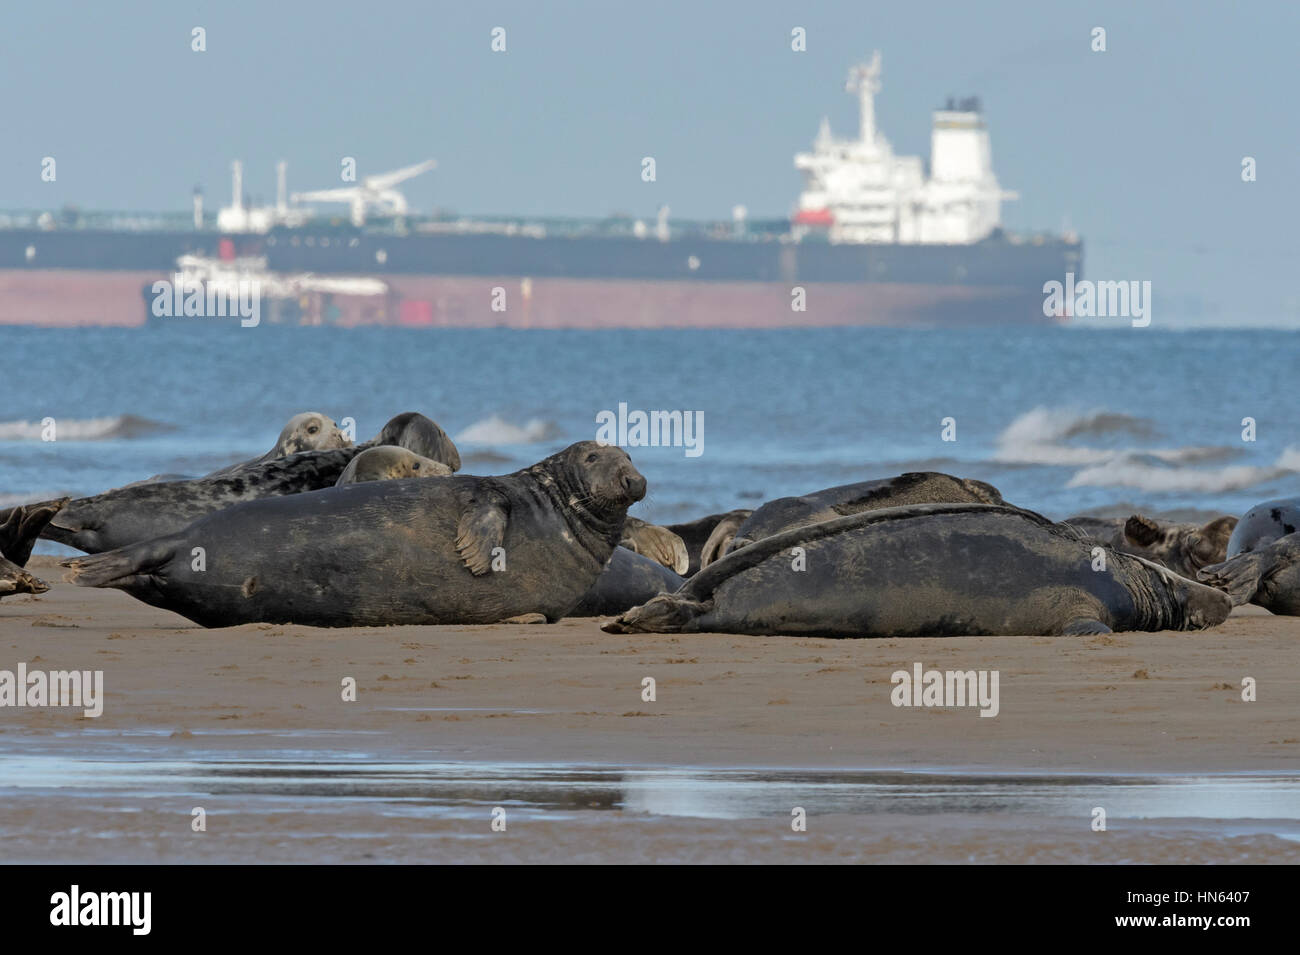 Atlantic grey seals (Halichoerus grypus) hauled out on beach, with oil tanker in background. Humber estuary, Lincolnshire, - Stock Image